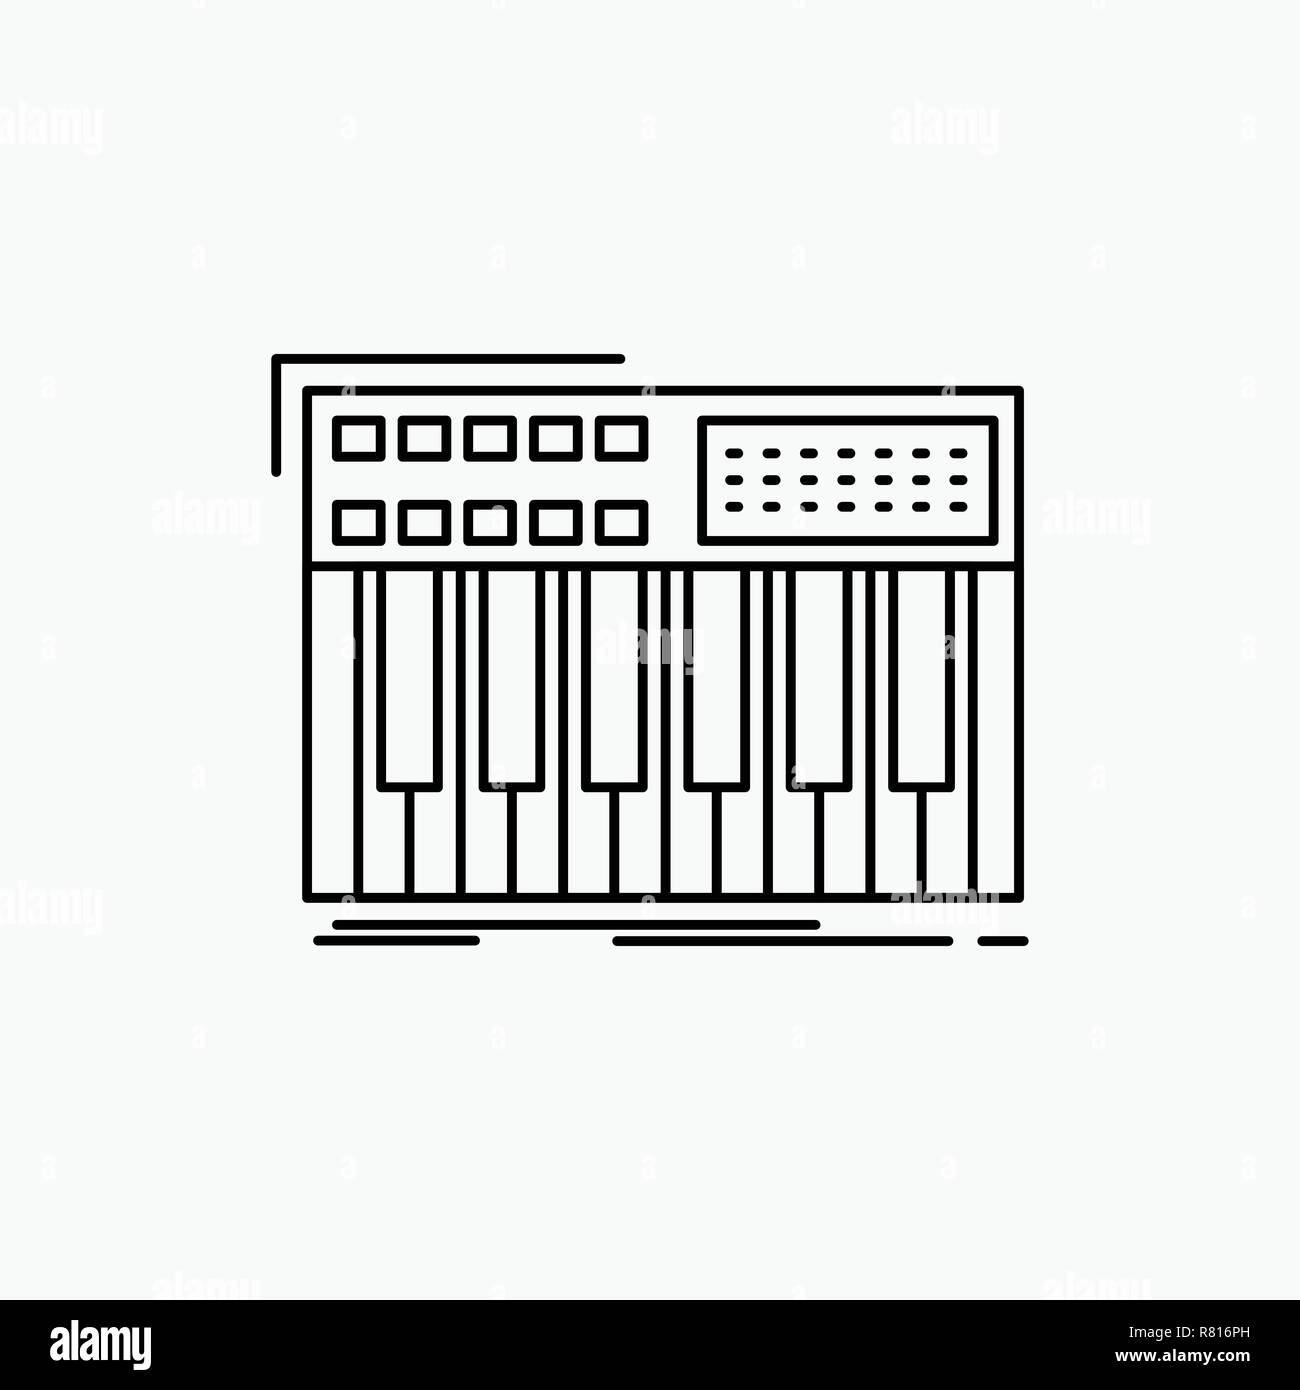 synth, keyboard, midi, synthesiser, synthesizer Line Icon. Vector isolated illustration - Stock Image